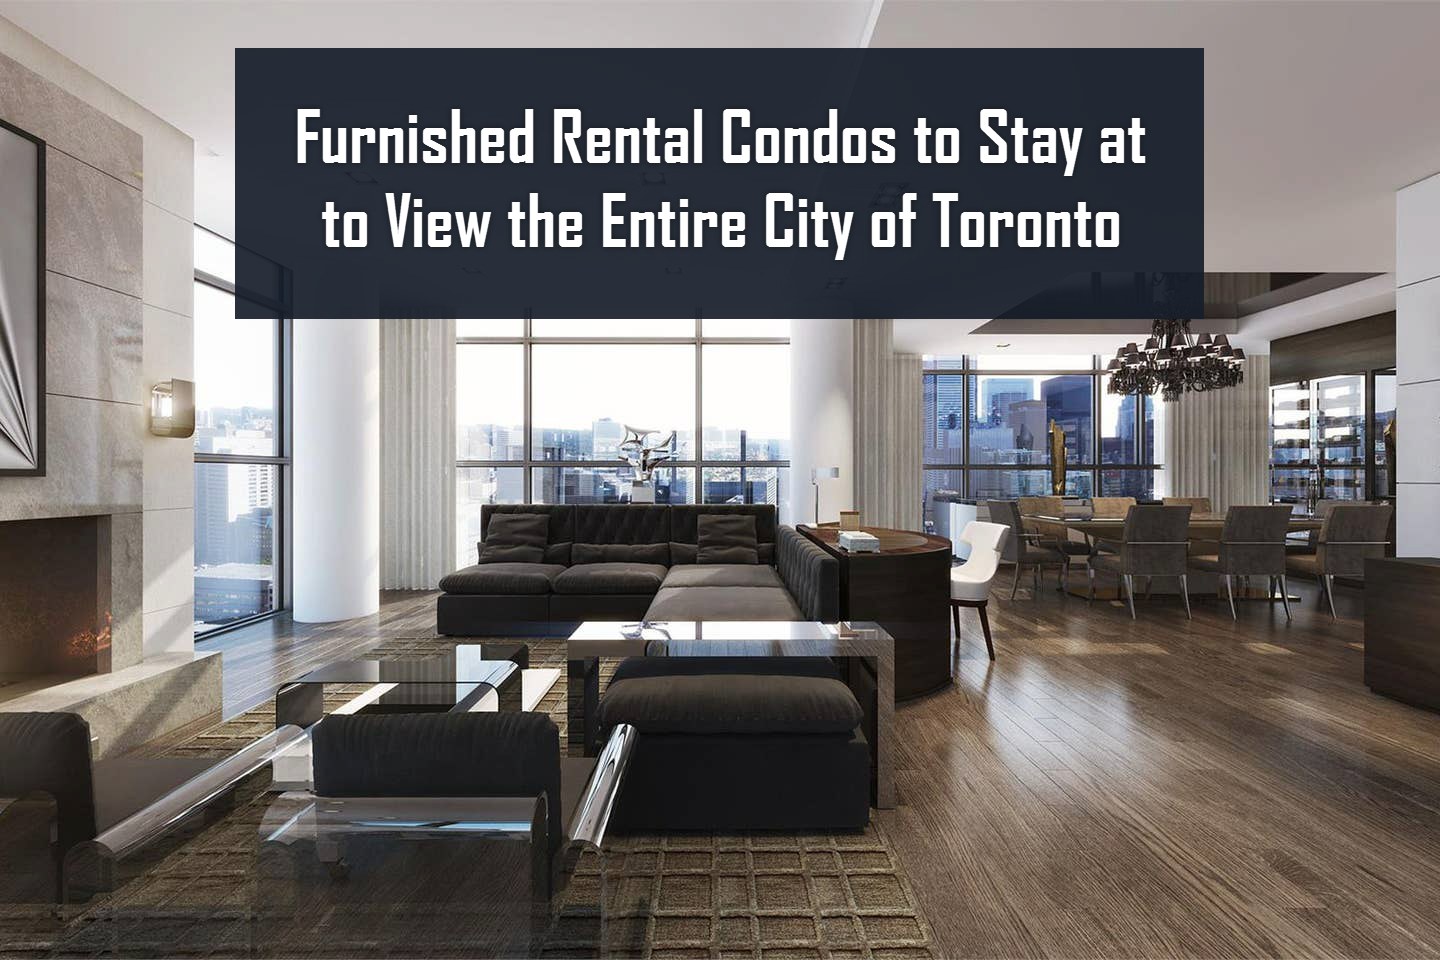 Furnished Rental Condos to Stay at to View the Entire City of Toronto